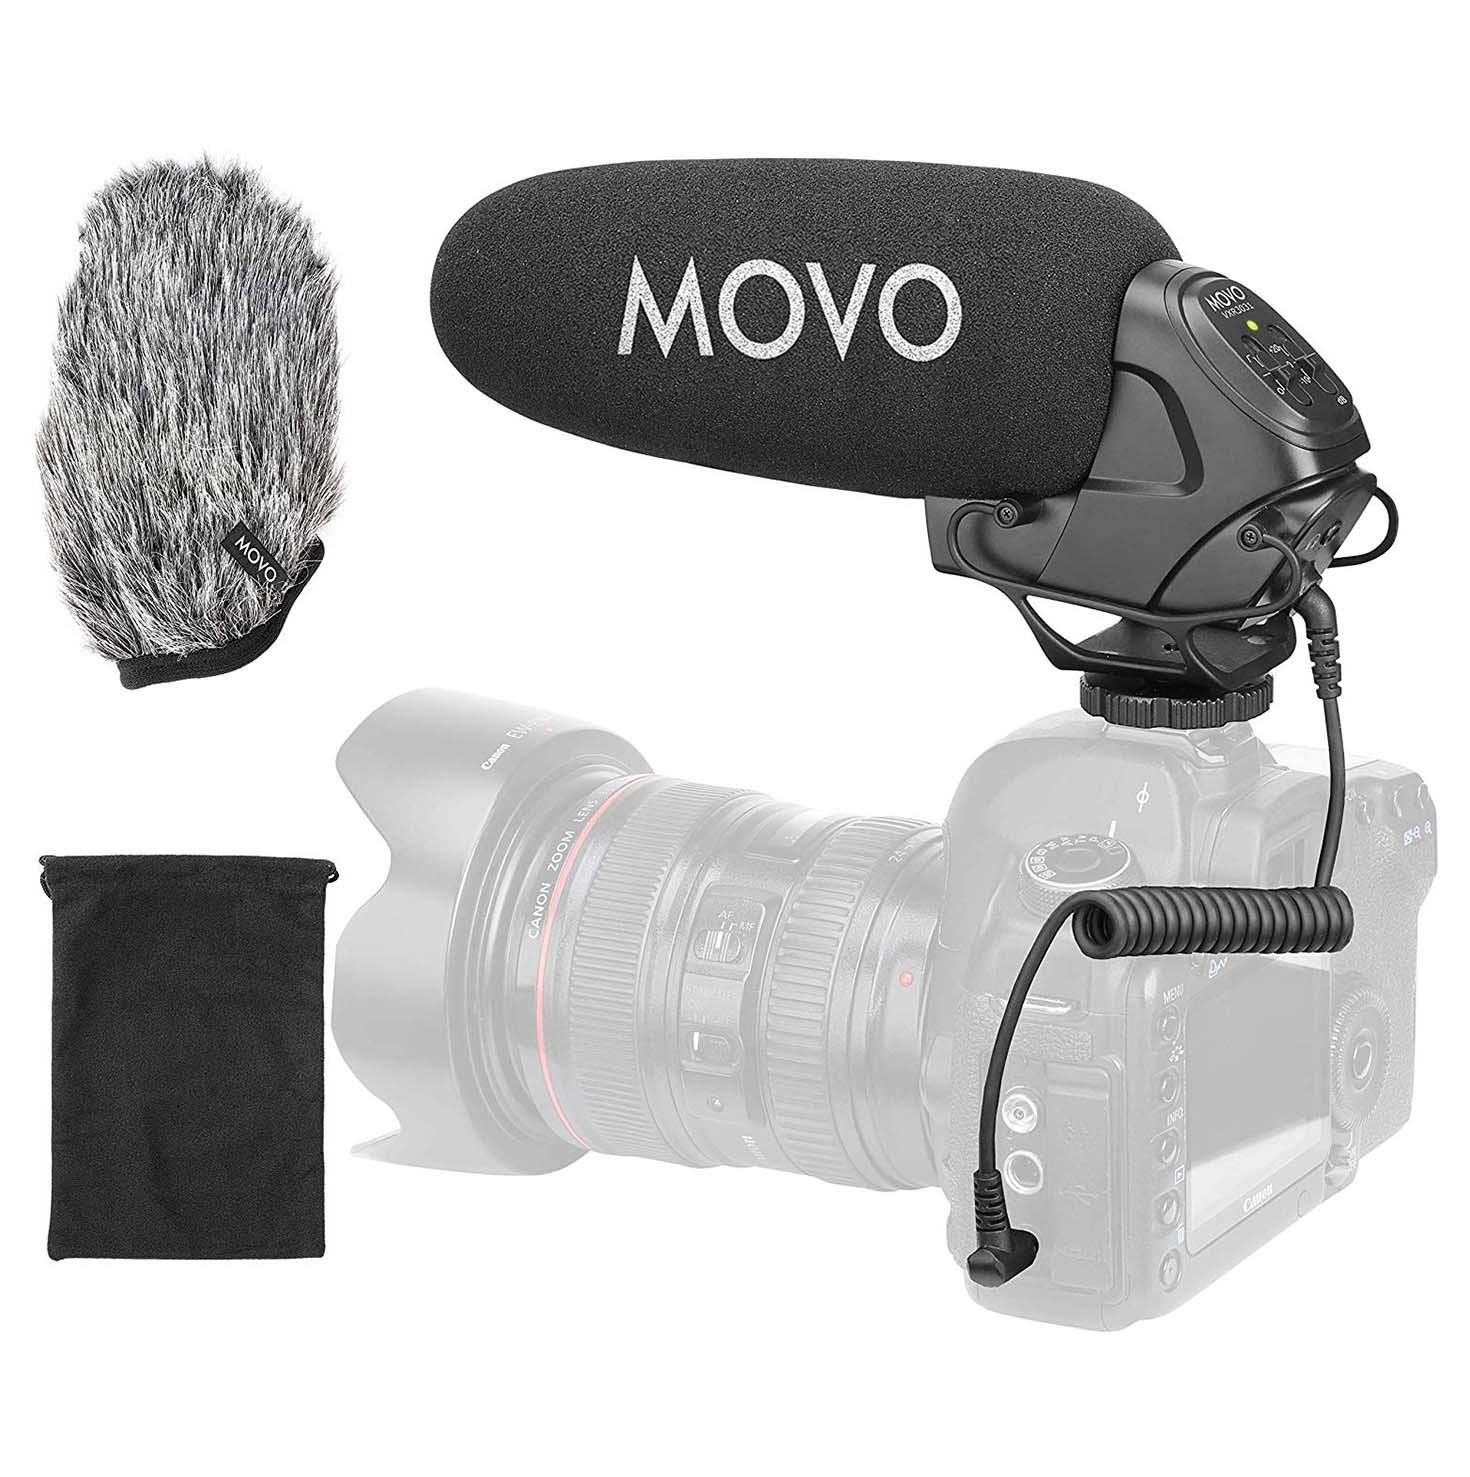 Movo VXR3031 Shotgun Microphone - Supercardioid On-Camera Shotgun Mic with 2-Step High-Pass Filter, 3-Stage Audio Level Control, Headphone Monitoring Input + More